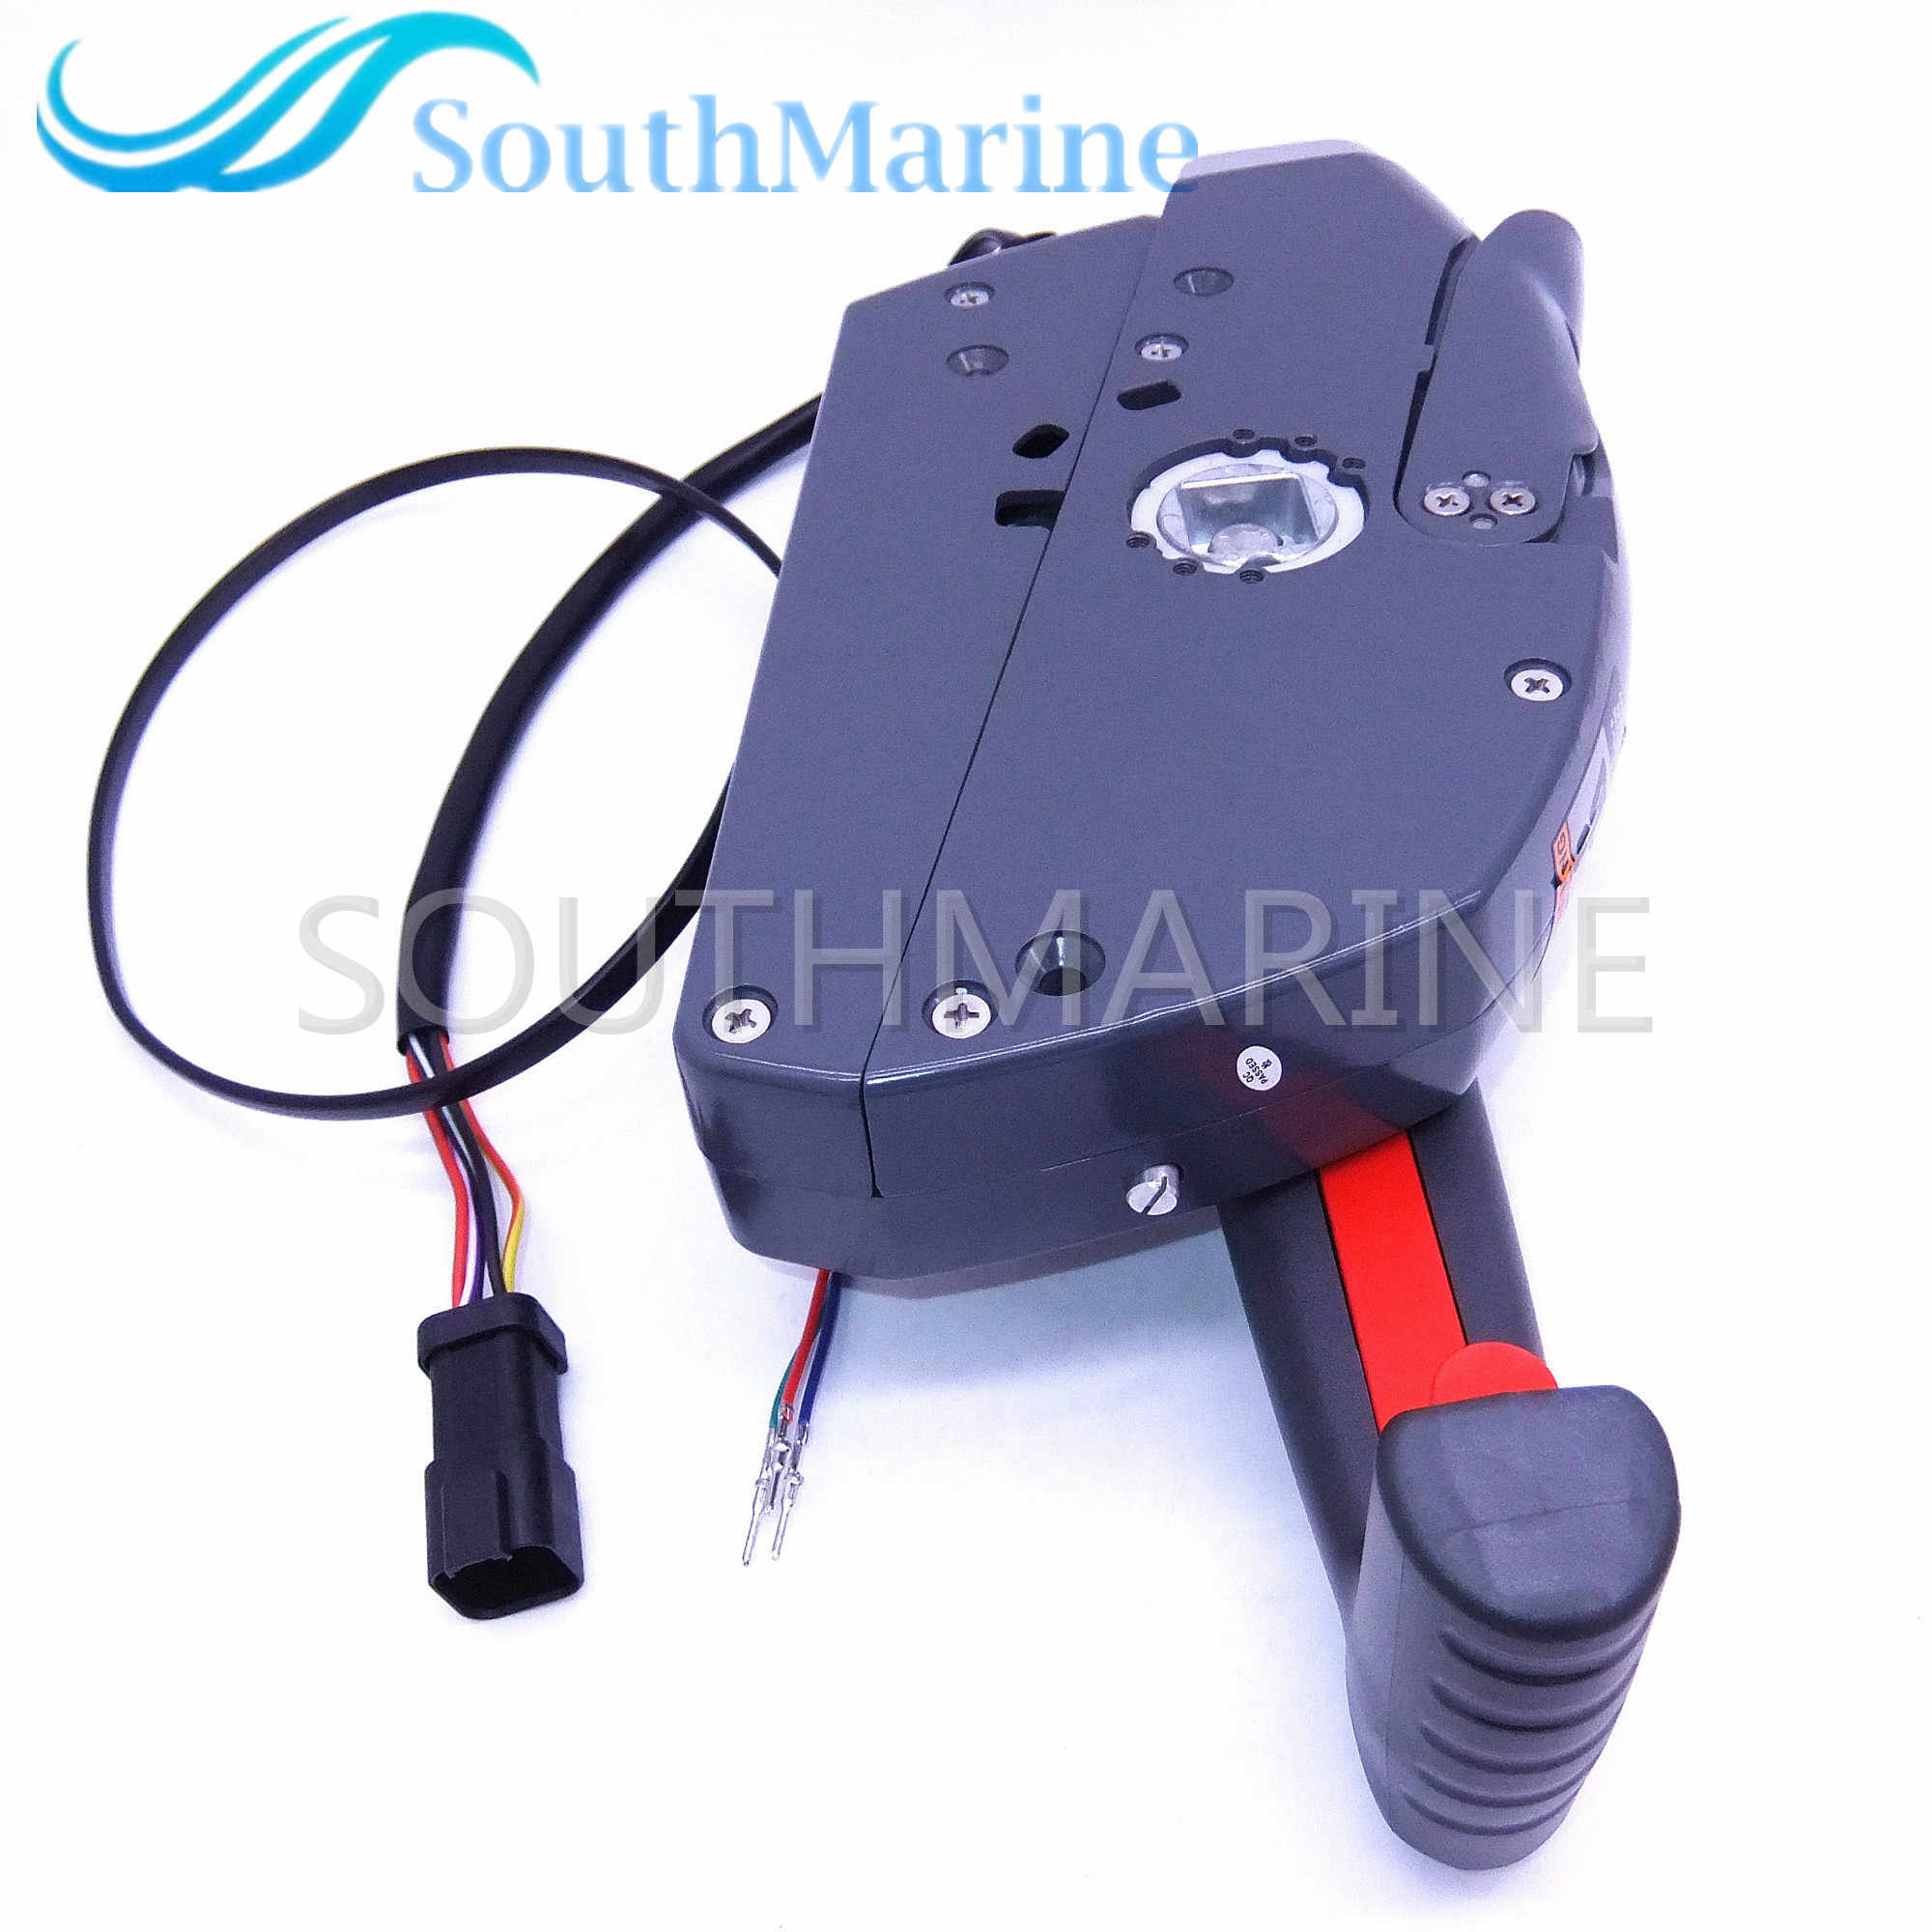 5006180 Boat Motor Side Mount Remote Control Box for Johnson ... on